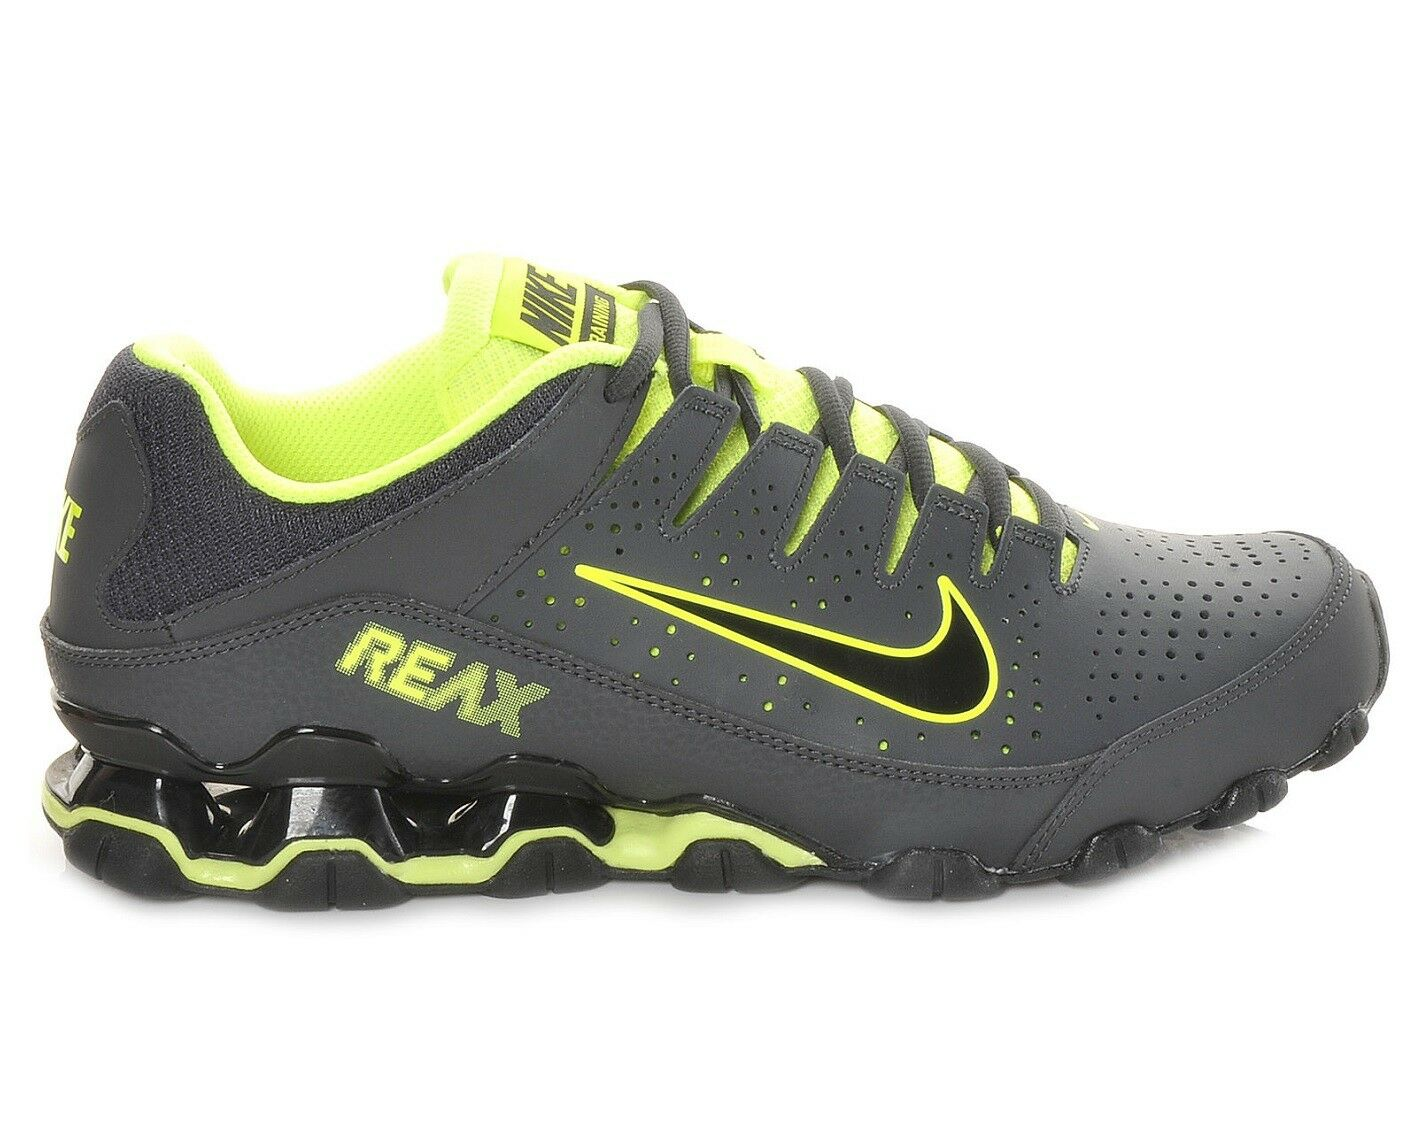 Nike Reax 8 8 8 TR Mens 616272-036 Anthracite Black Volt Training Shoes Size 8 299b75